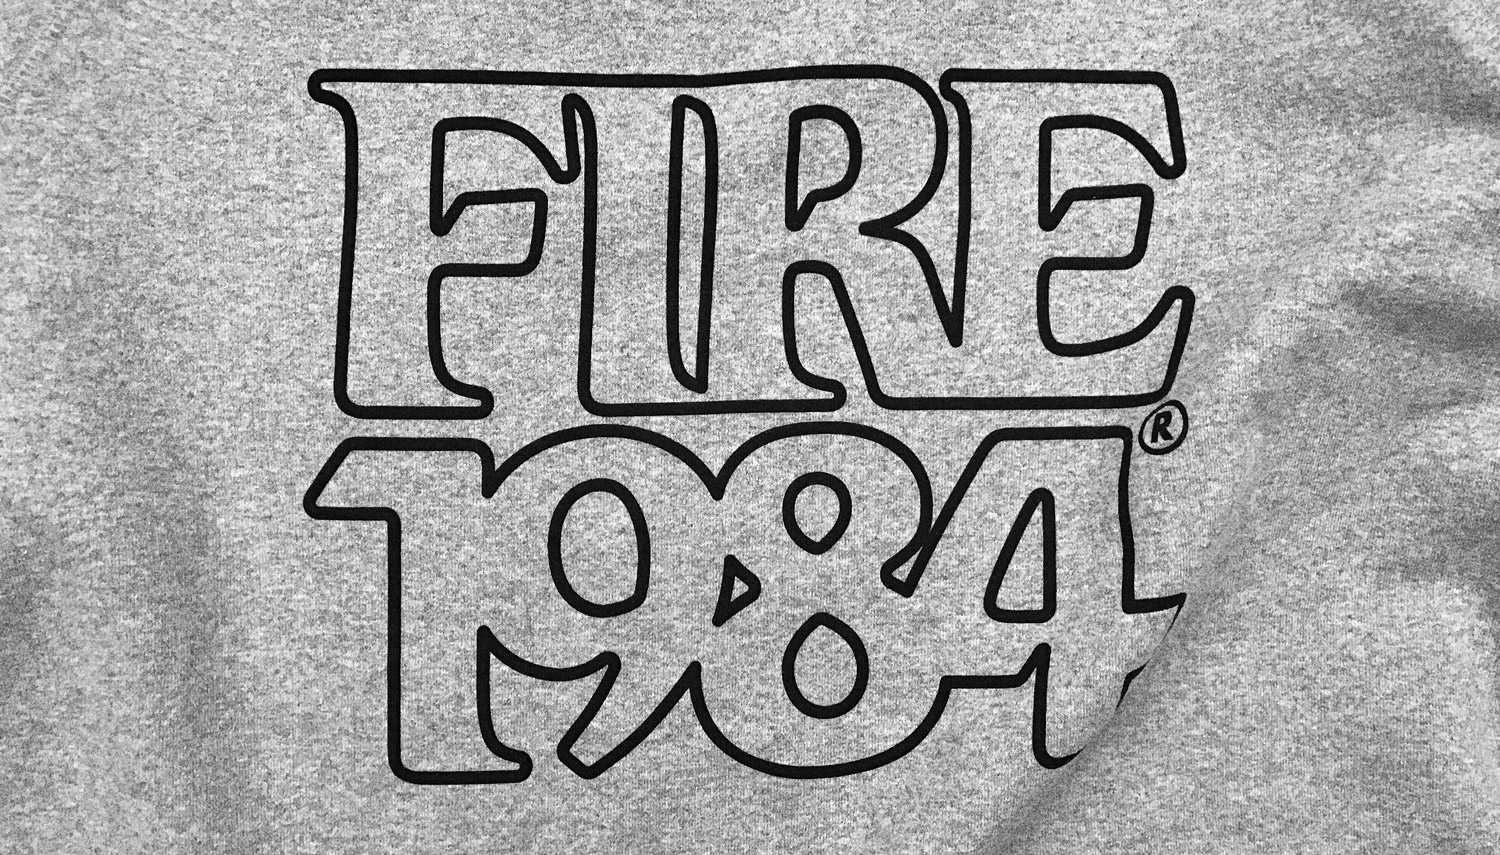 FIRE1984 catalog 20171 logo outline college fiilis